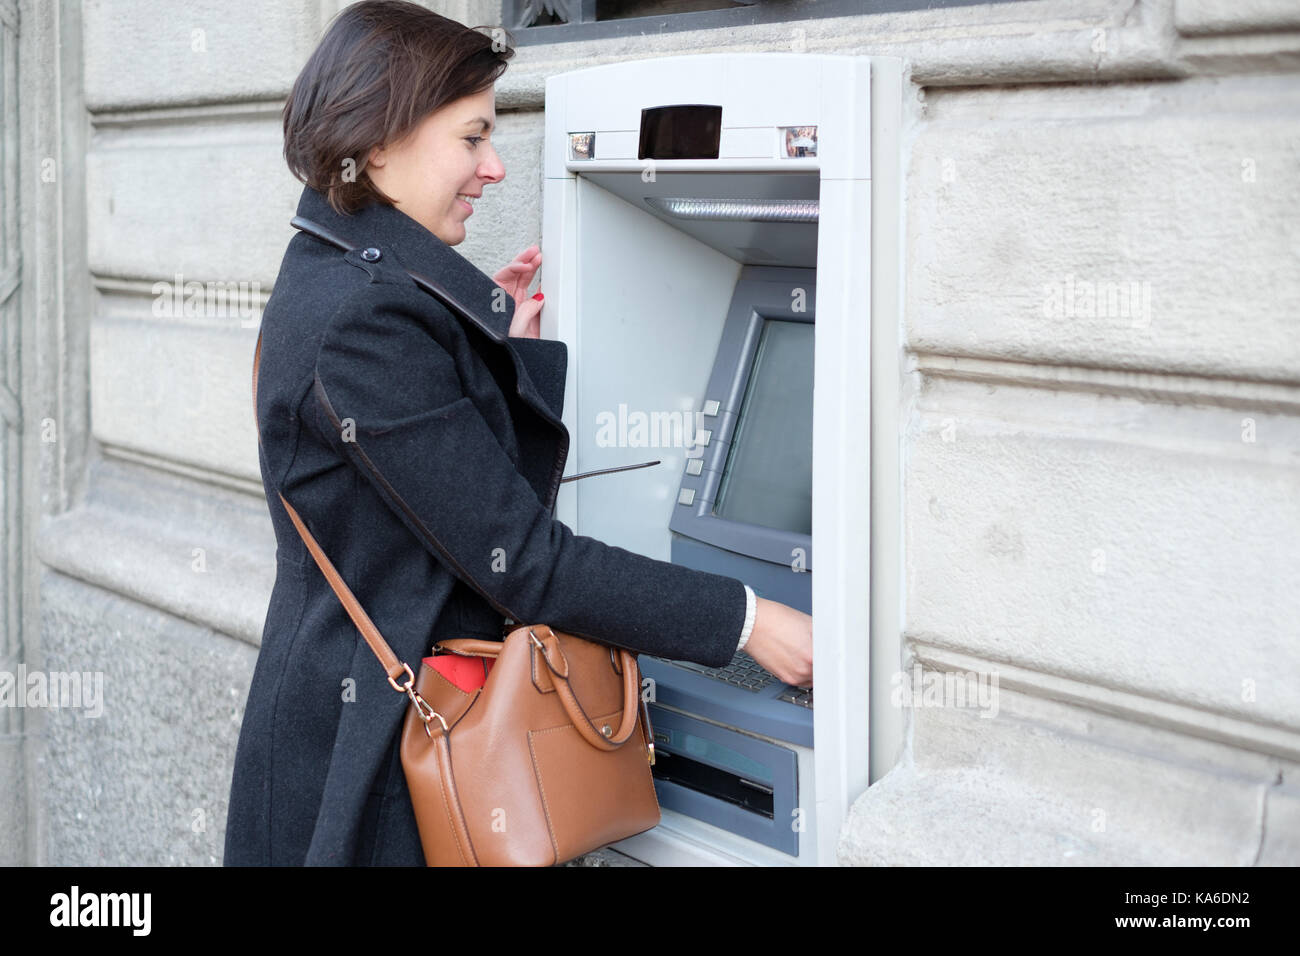 Woman making a bank withdrawal in an atm cash machine - Stock Image